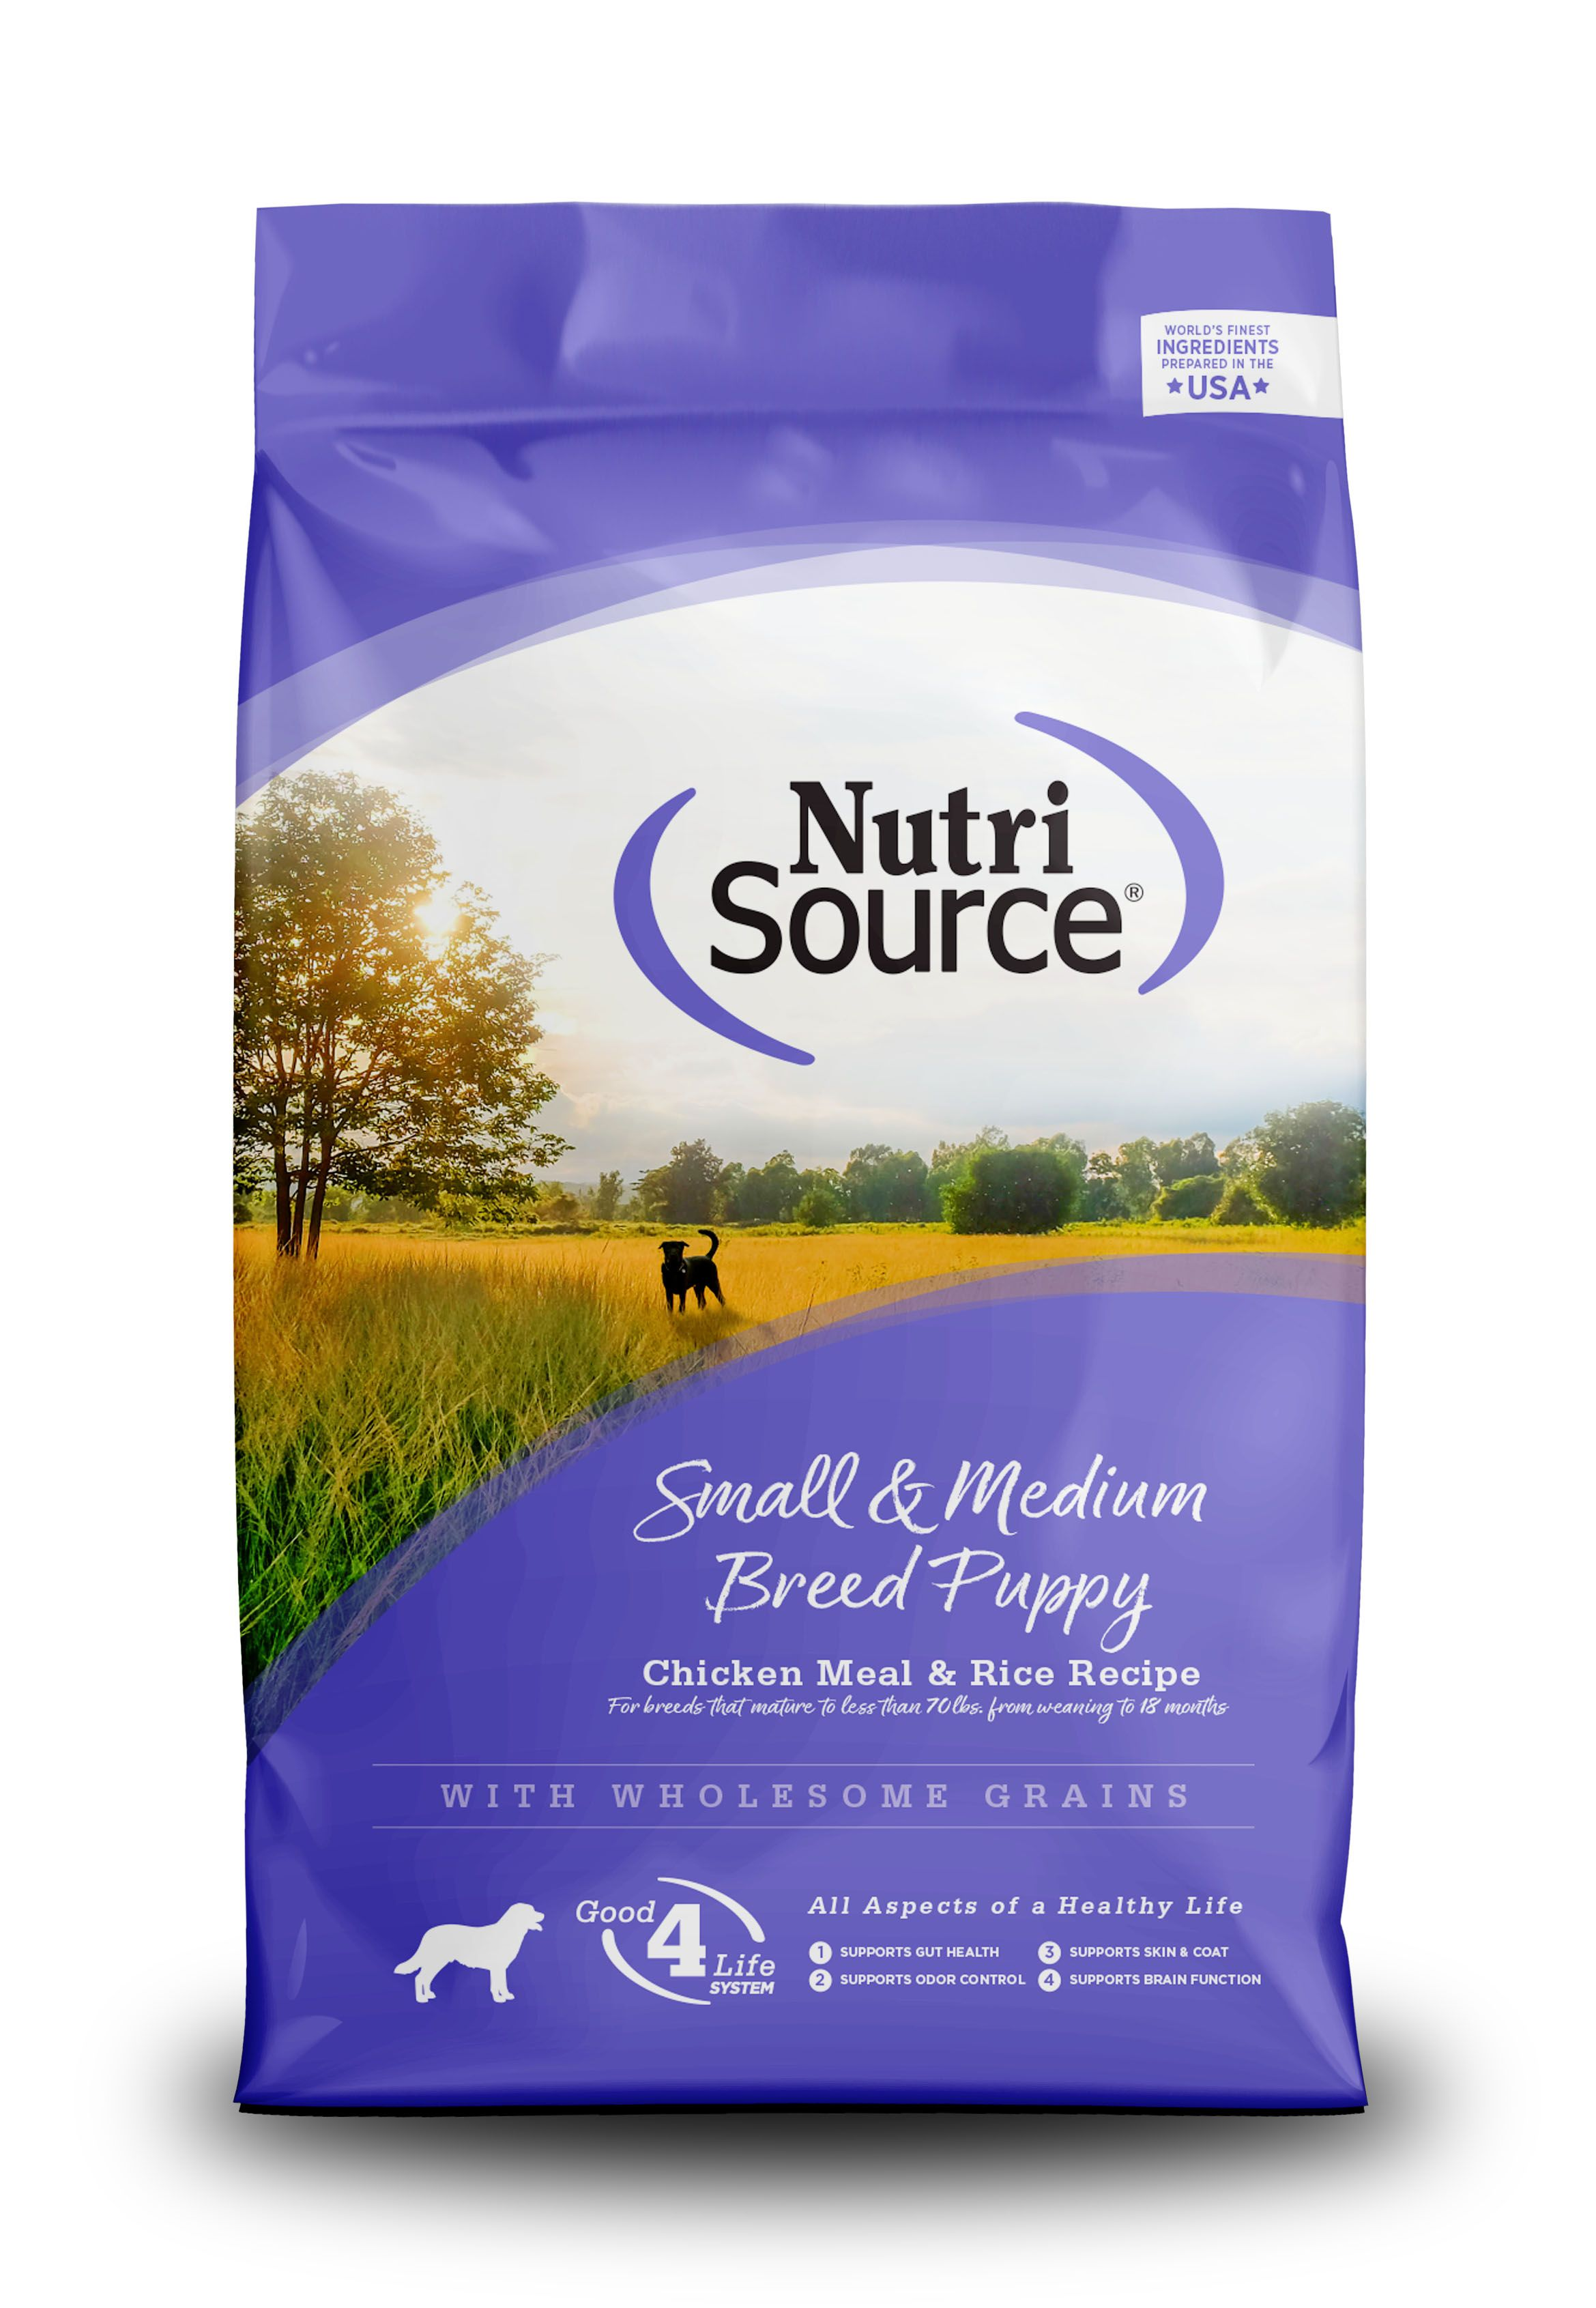 NutriSource Small and Medium Breed Puppy Chicken and Rice Dry Dog Food Image